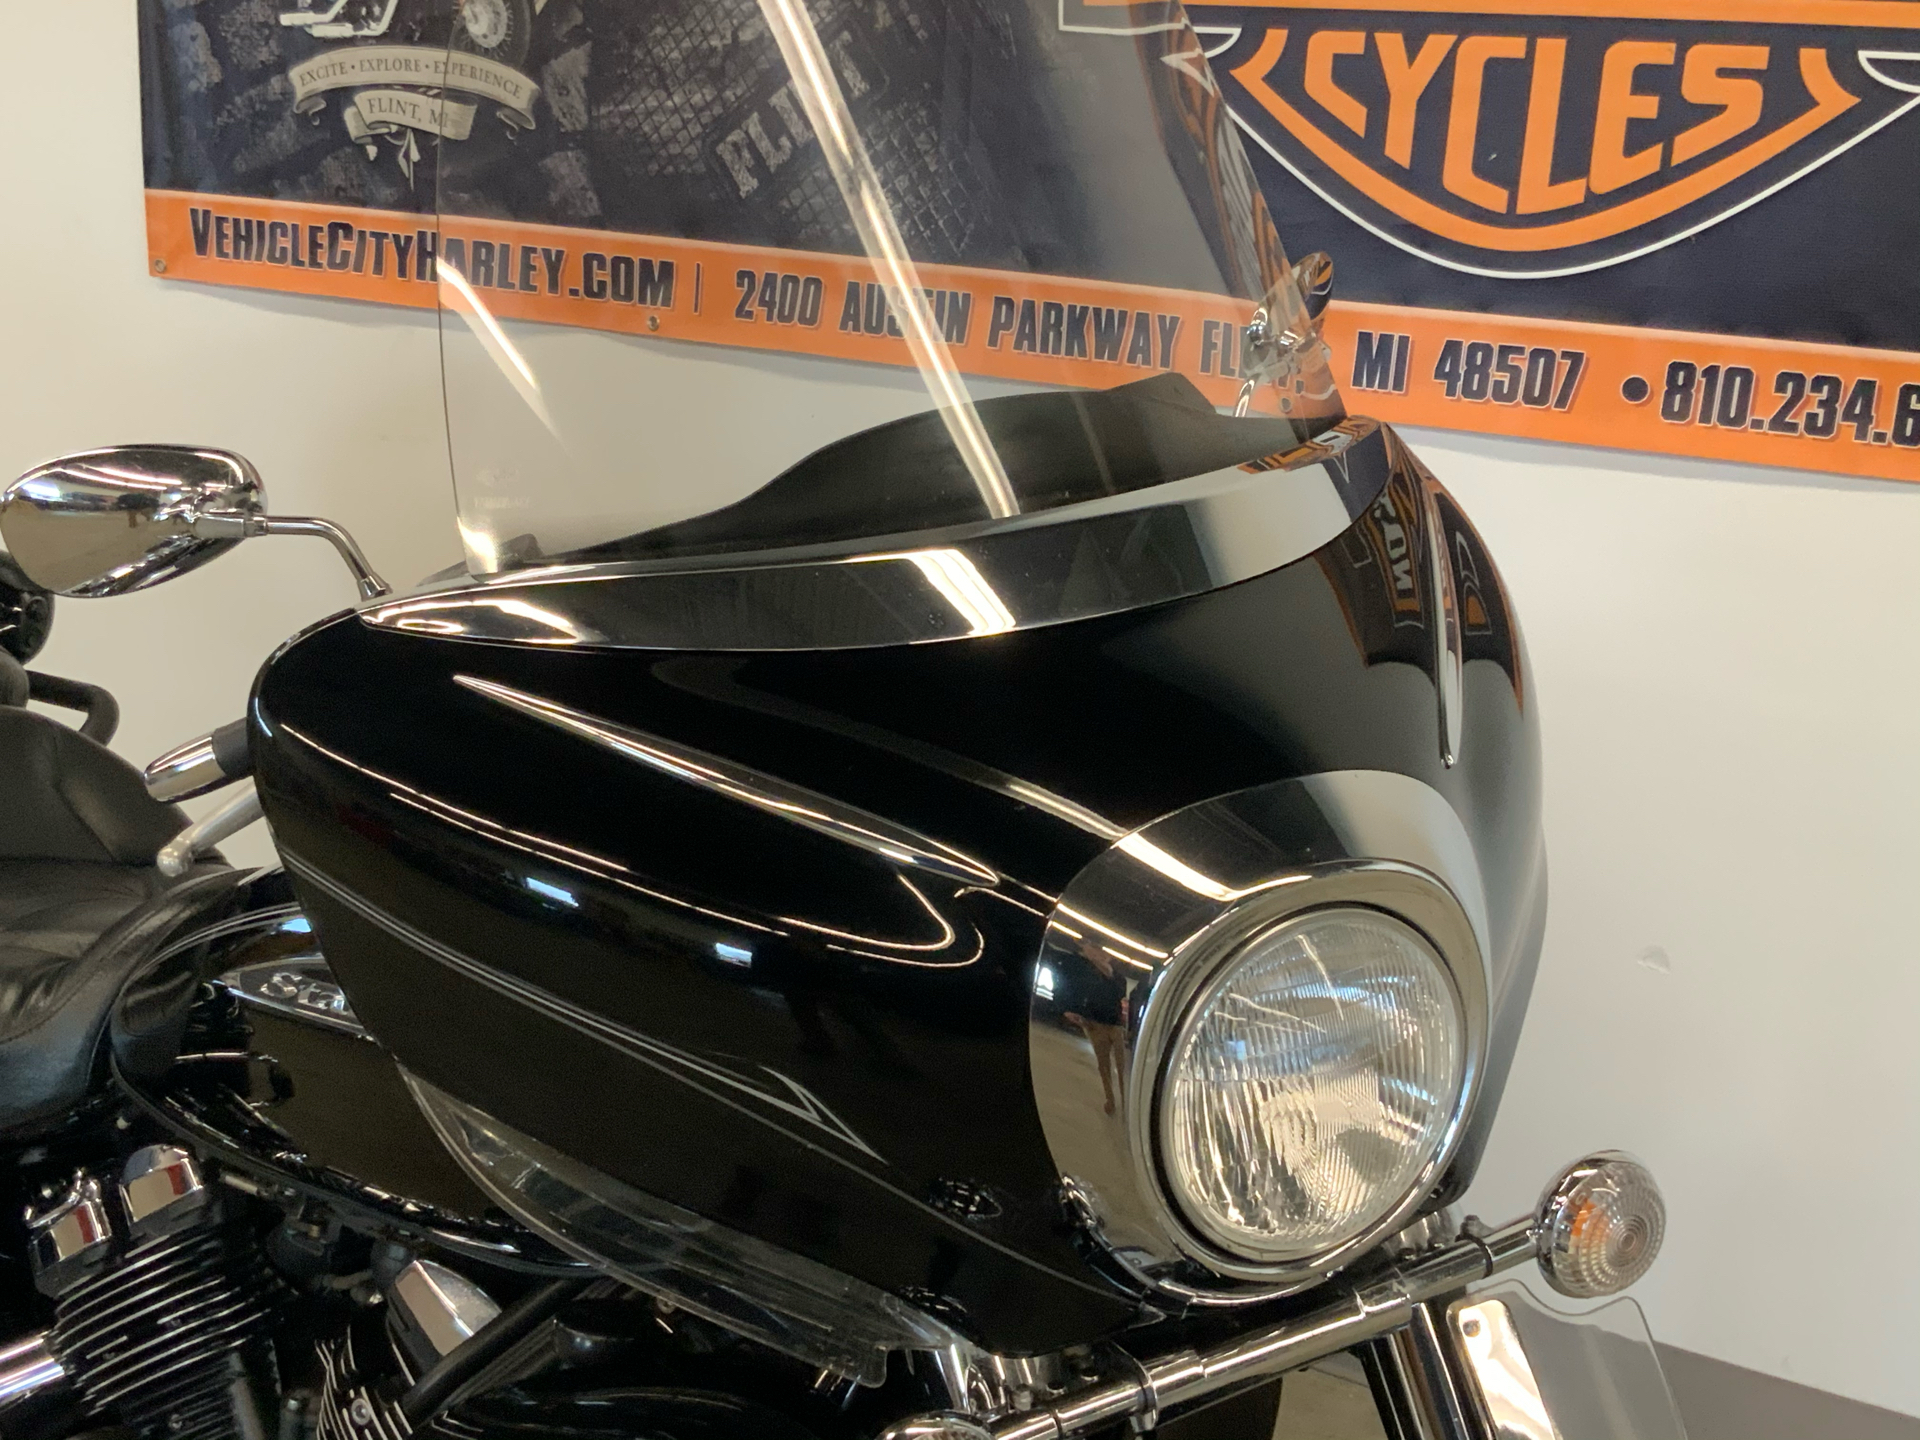 2012 Yamaha Royal Star Venture S in Flint, Michigan - Photo 8